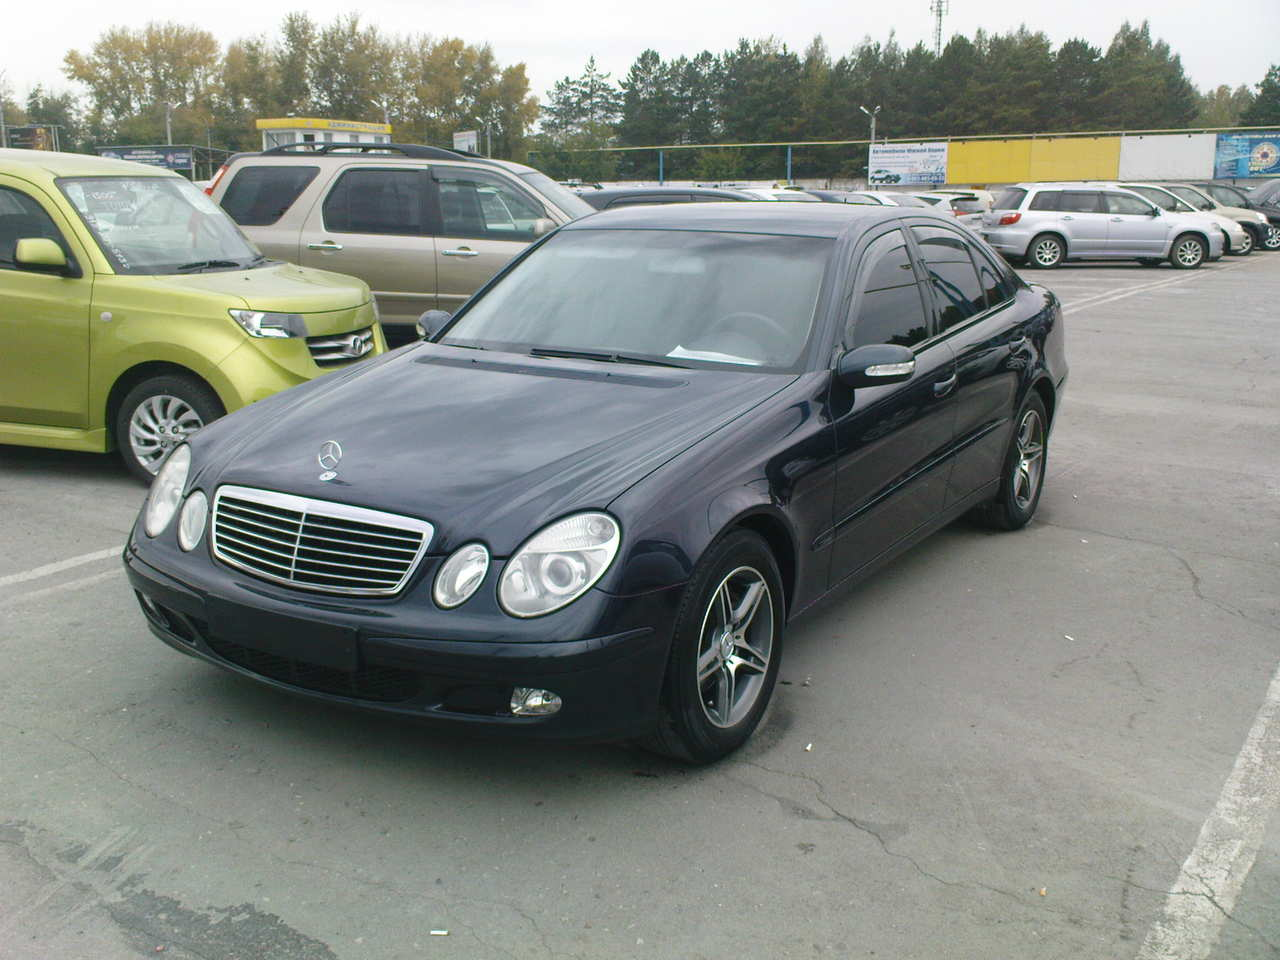 2002 mercedes benz e class pictures fr or rr manual for sale. Black Bedroom Furniture Sets. Home Design Ideas